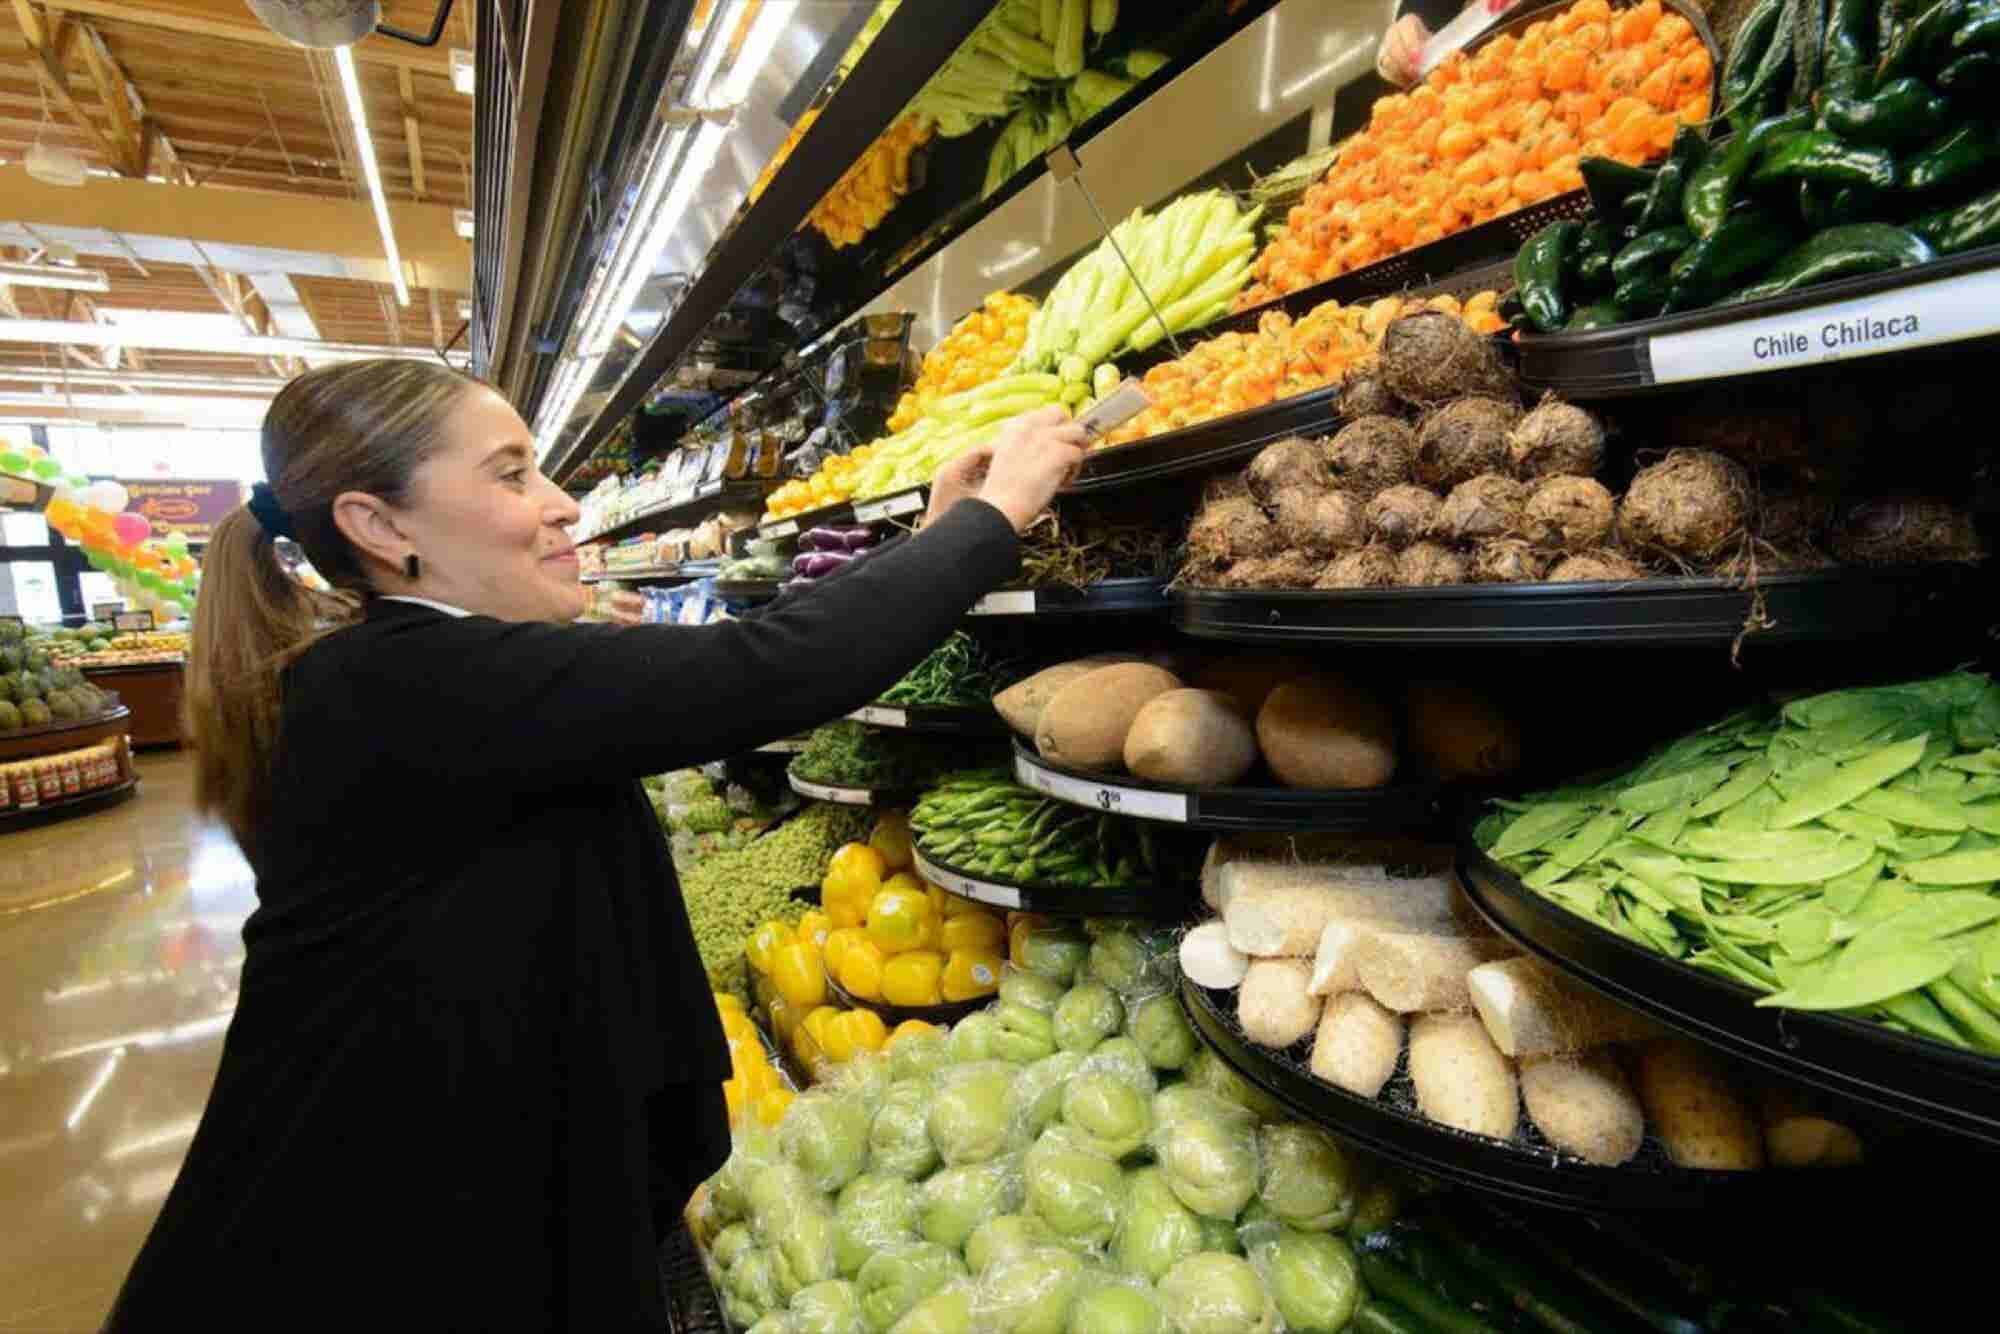 How the First Lady Helped Small Grocery Businesses Reduce 'Food Deserts' in California